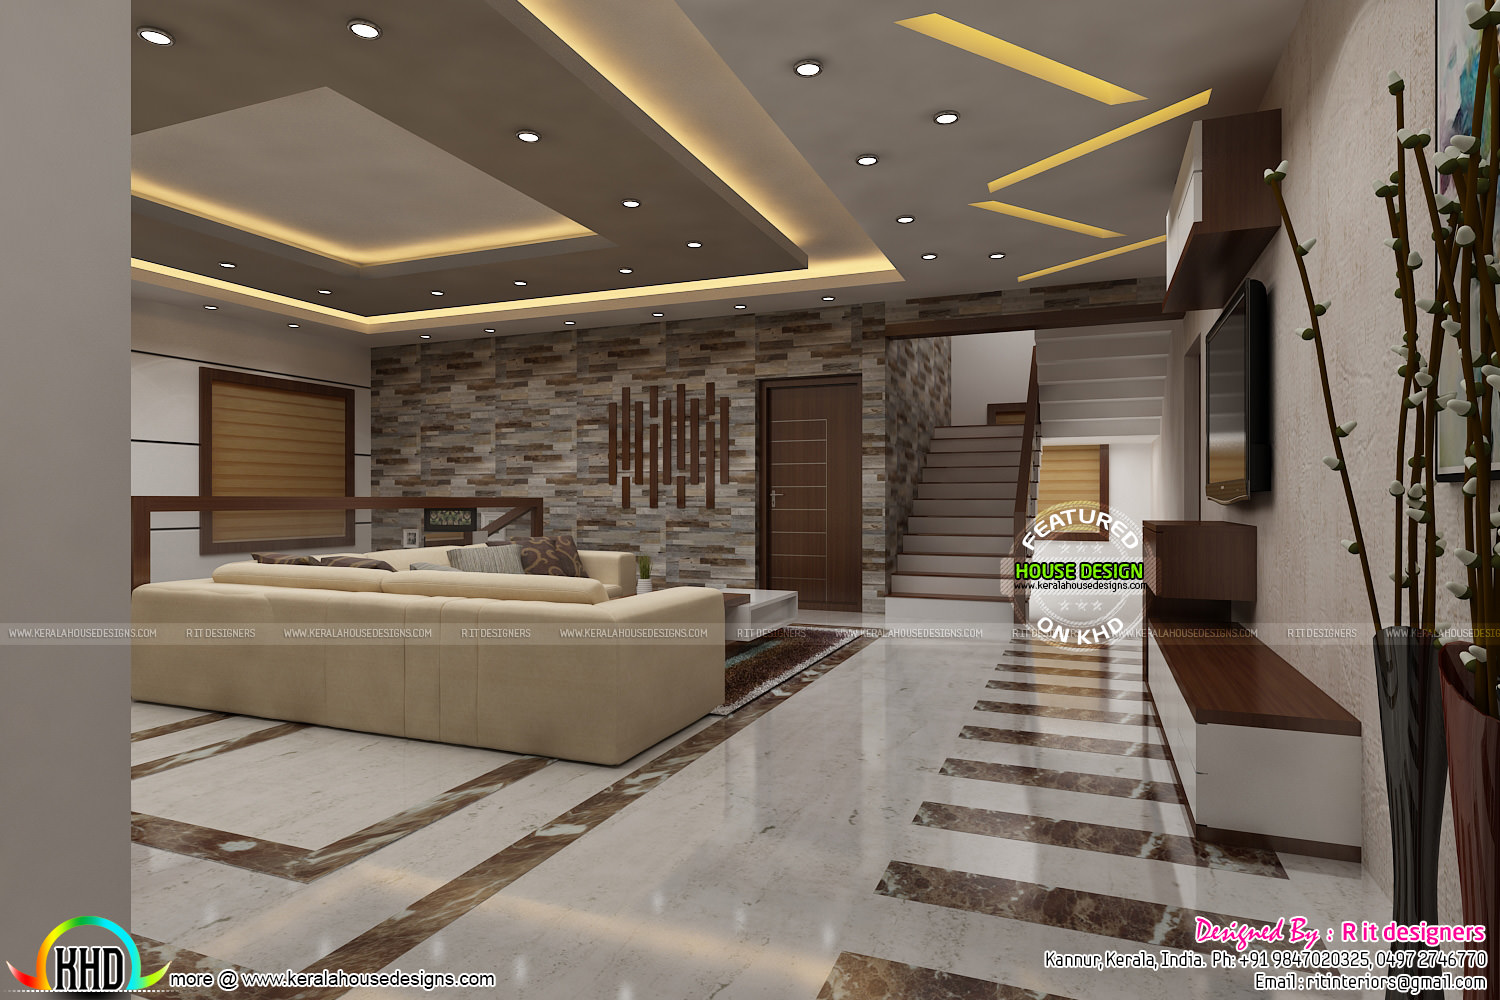 Most modern kerala living room interior kerala home for Interior designs in kerala